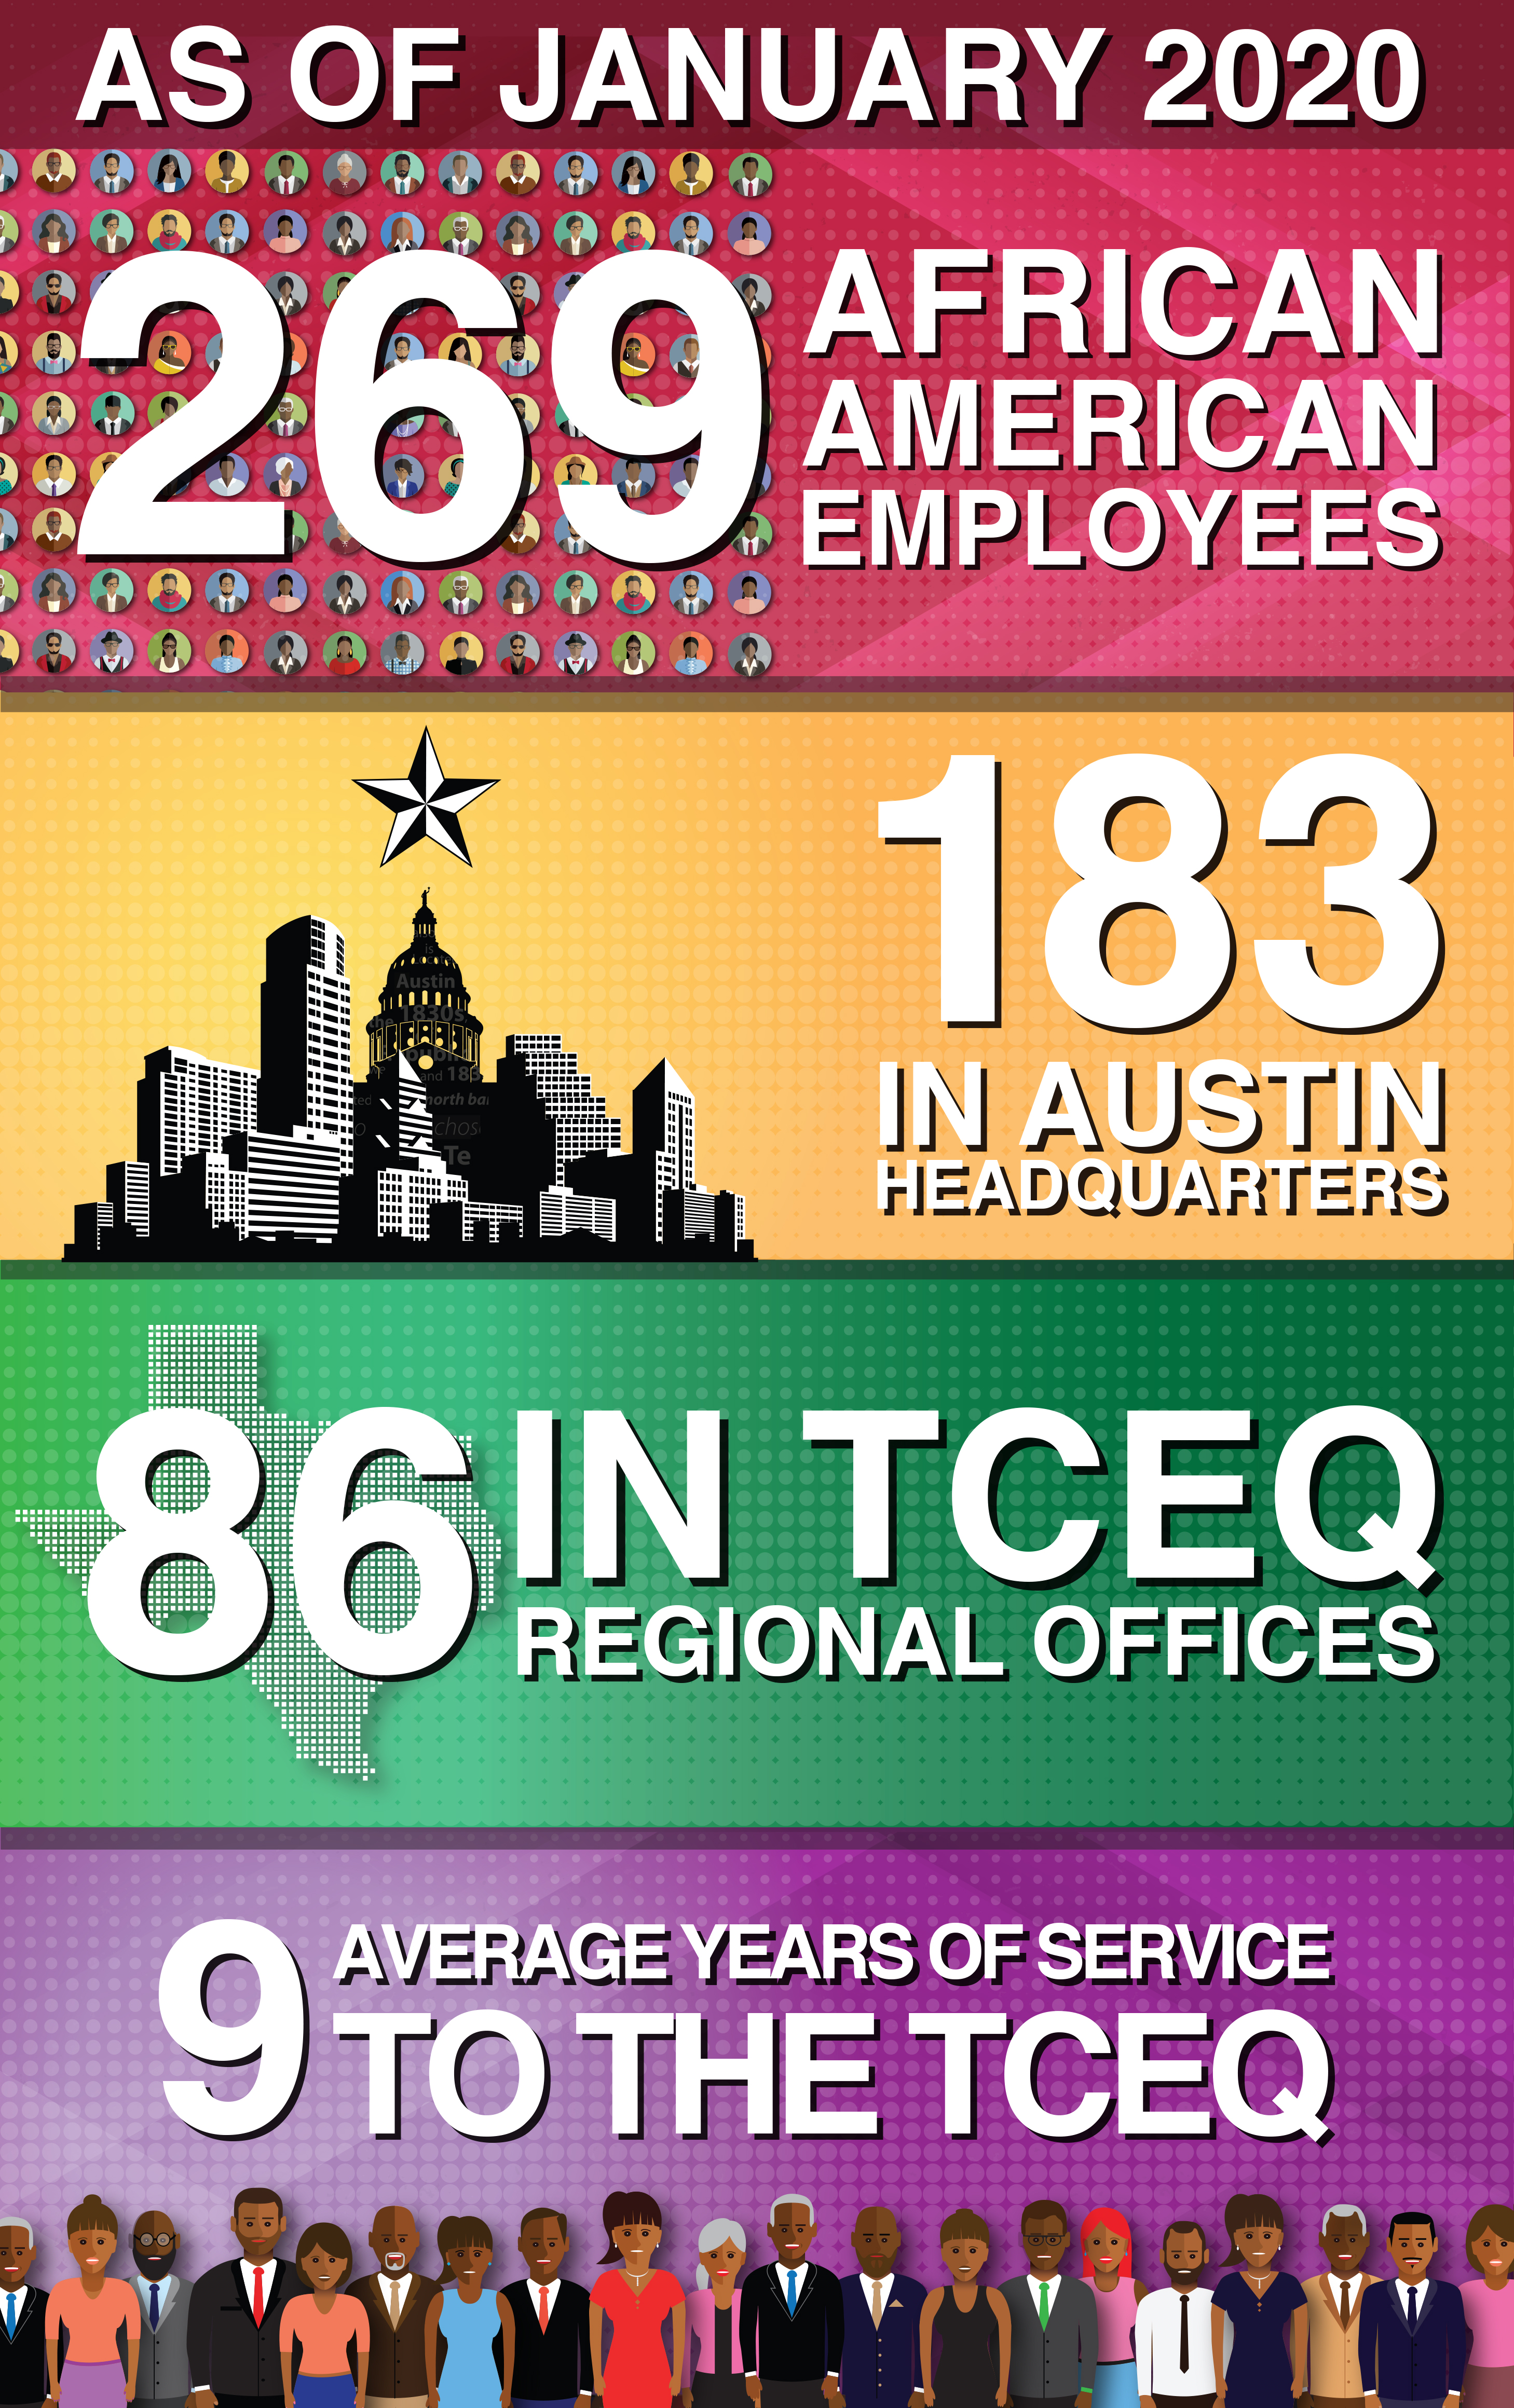 As of January 2020, 269 African American employees, 183 in Austin Headquarters, 86 in TCEQ Regional Offices, and nine average years of service to the TCEQ